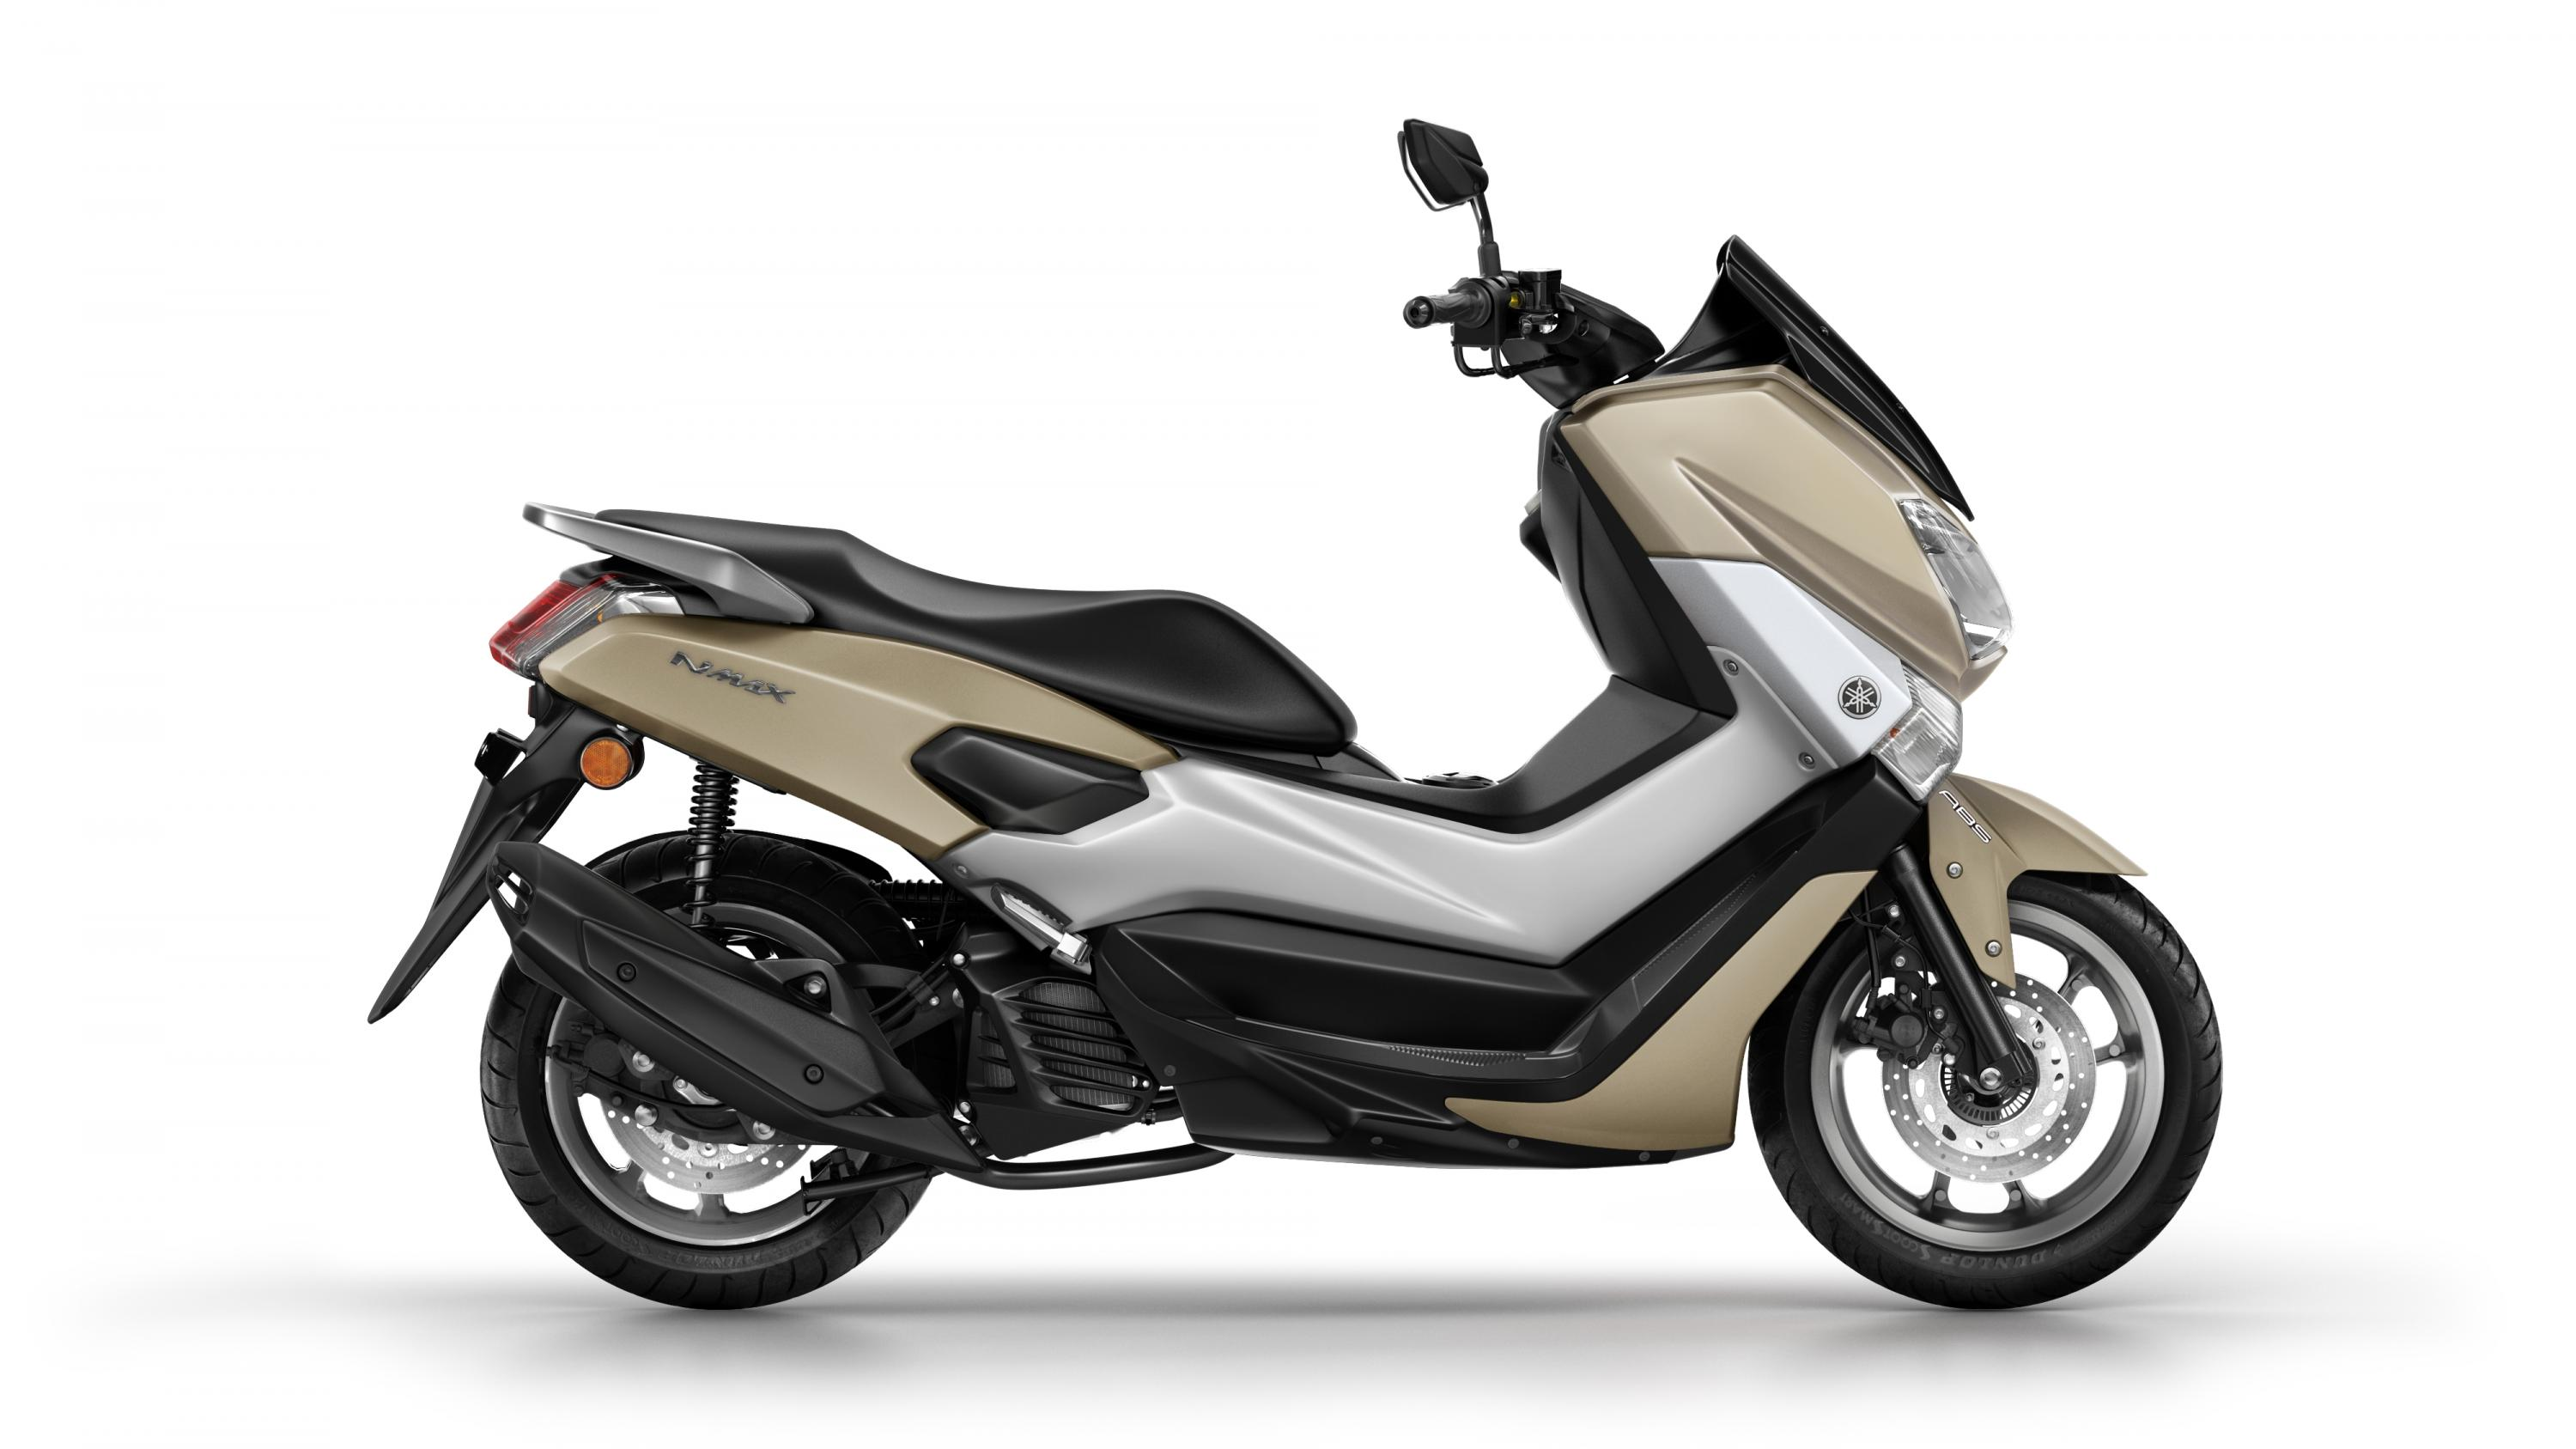 Yamaha Nmax For Sale Price Guide The Bike Market 1 Aksesoris